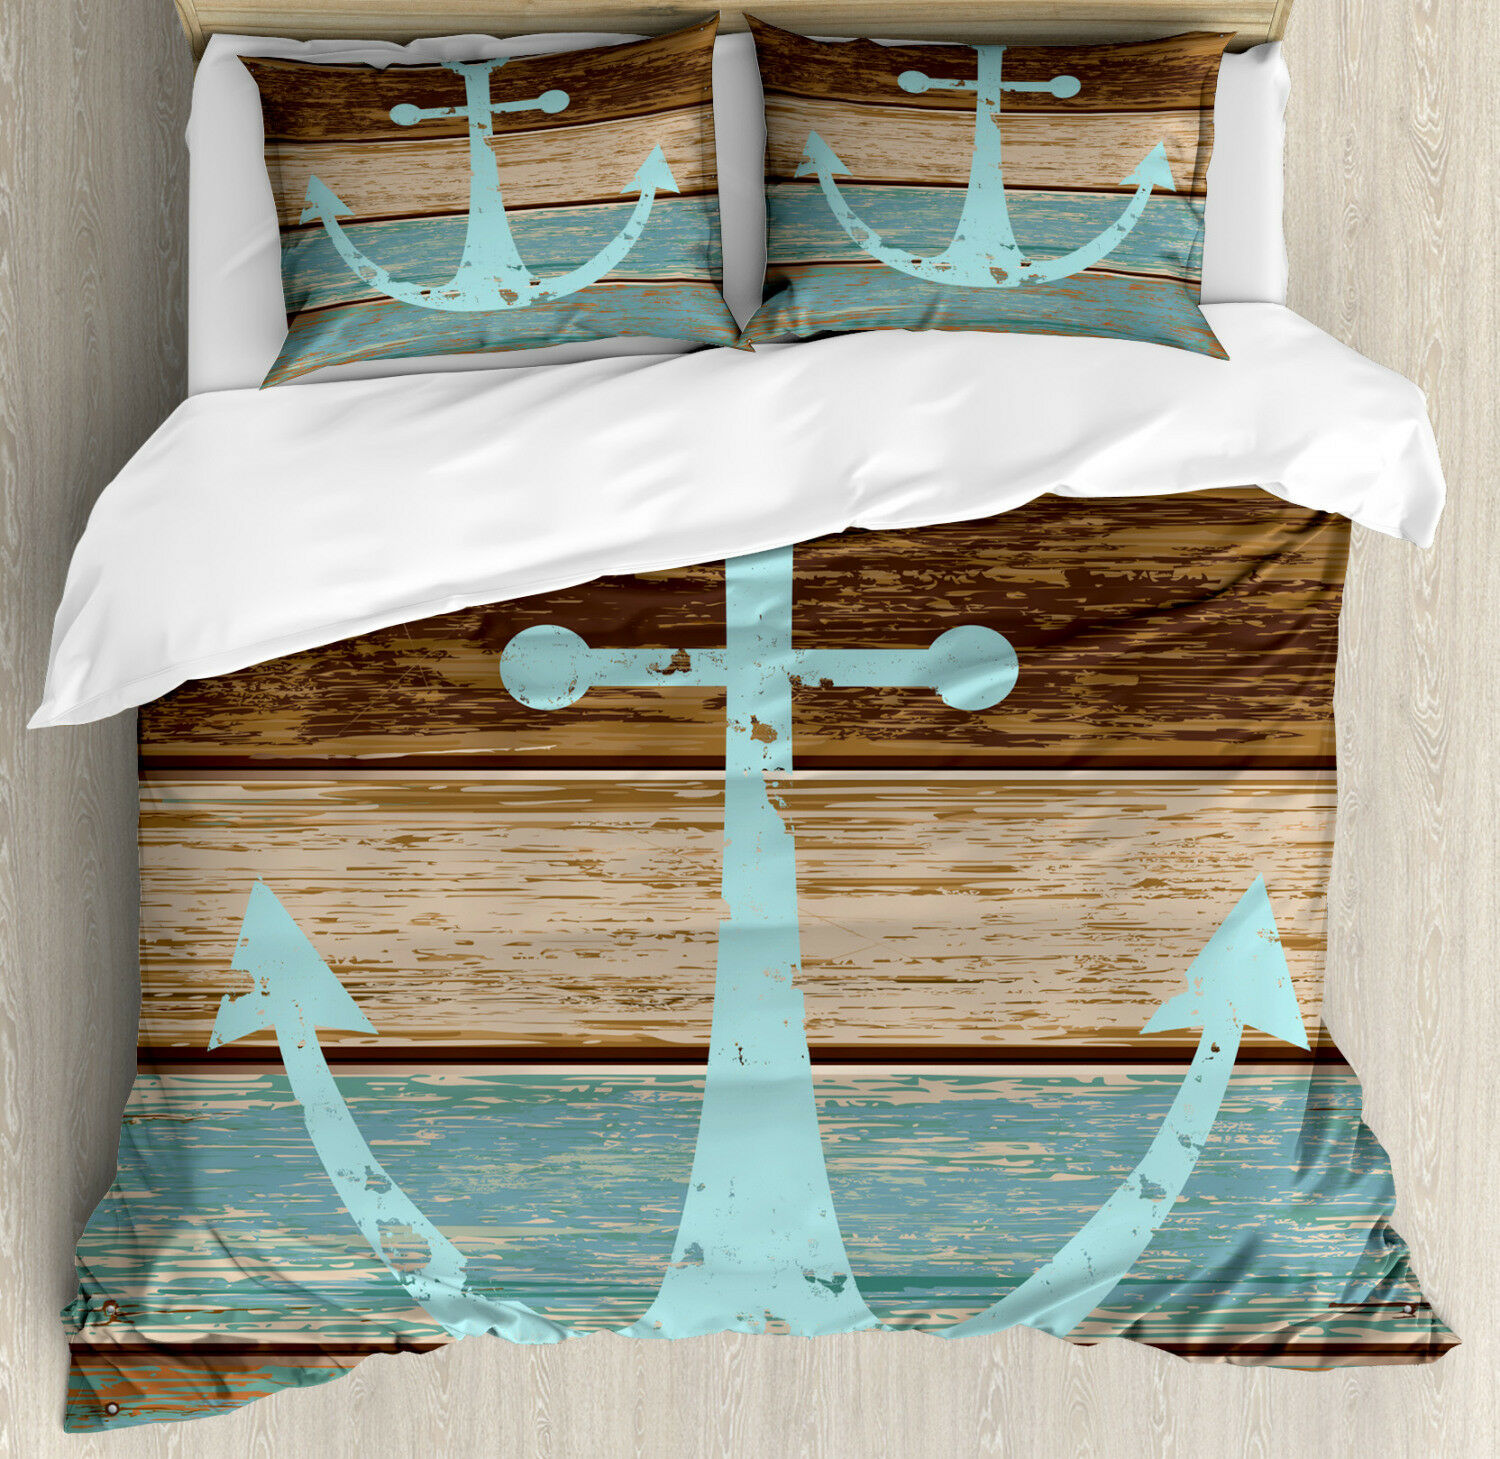 Rustic Duvet Cover Set with Pillow Shams Anchor on Wood Planks Print